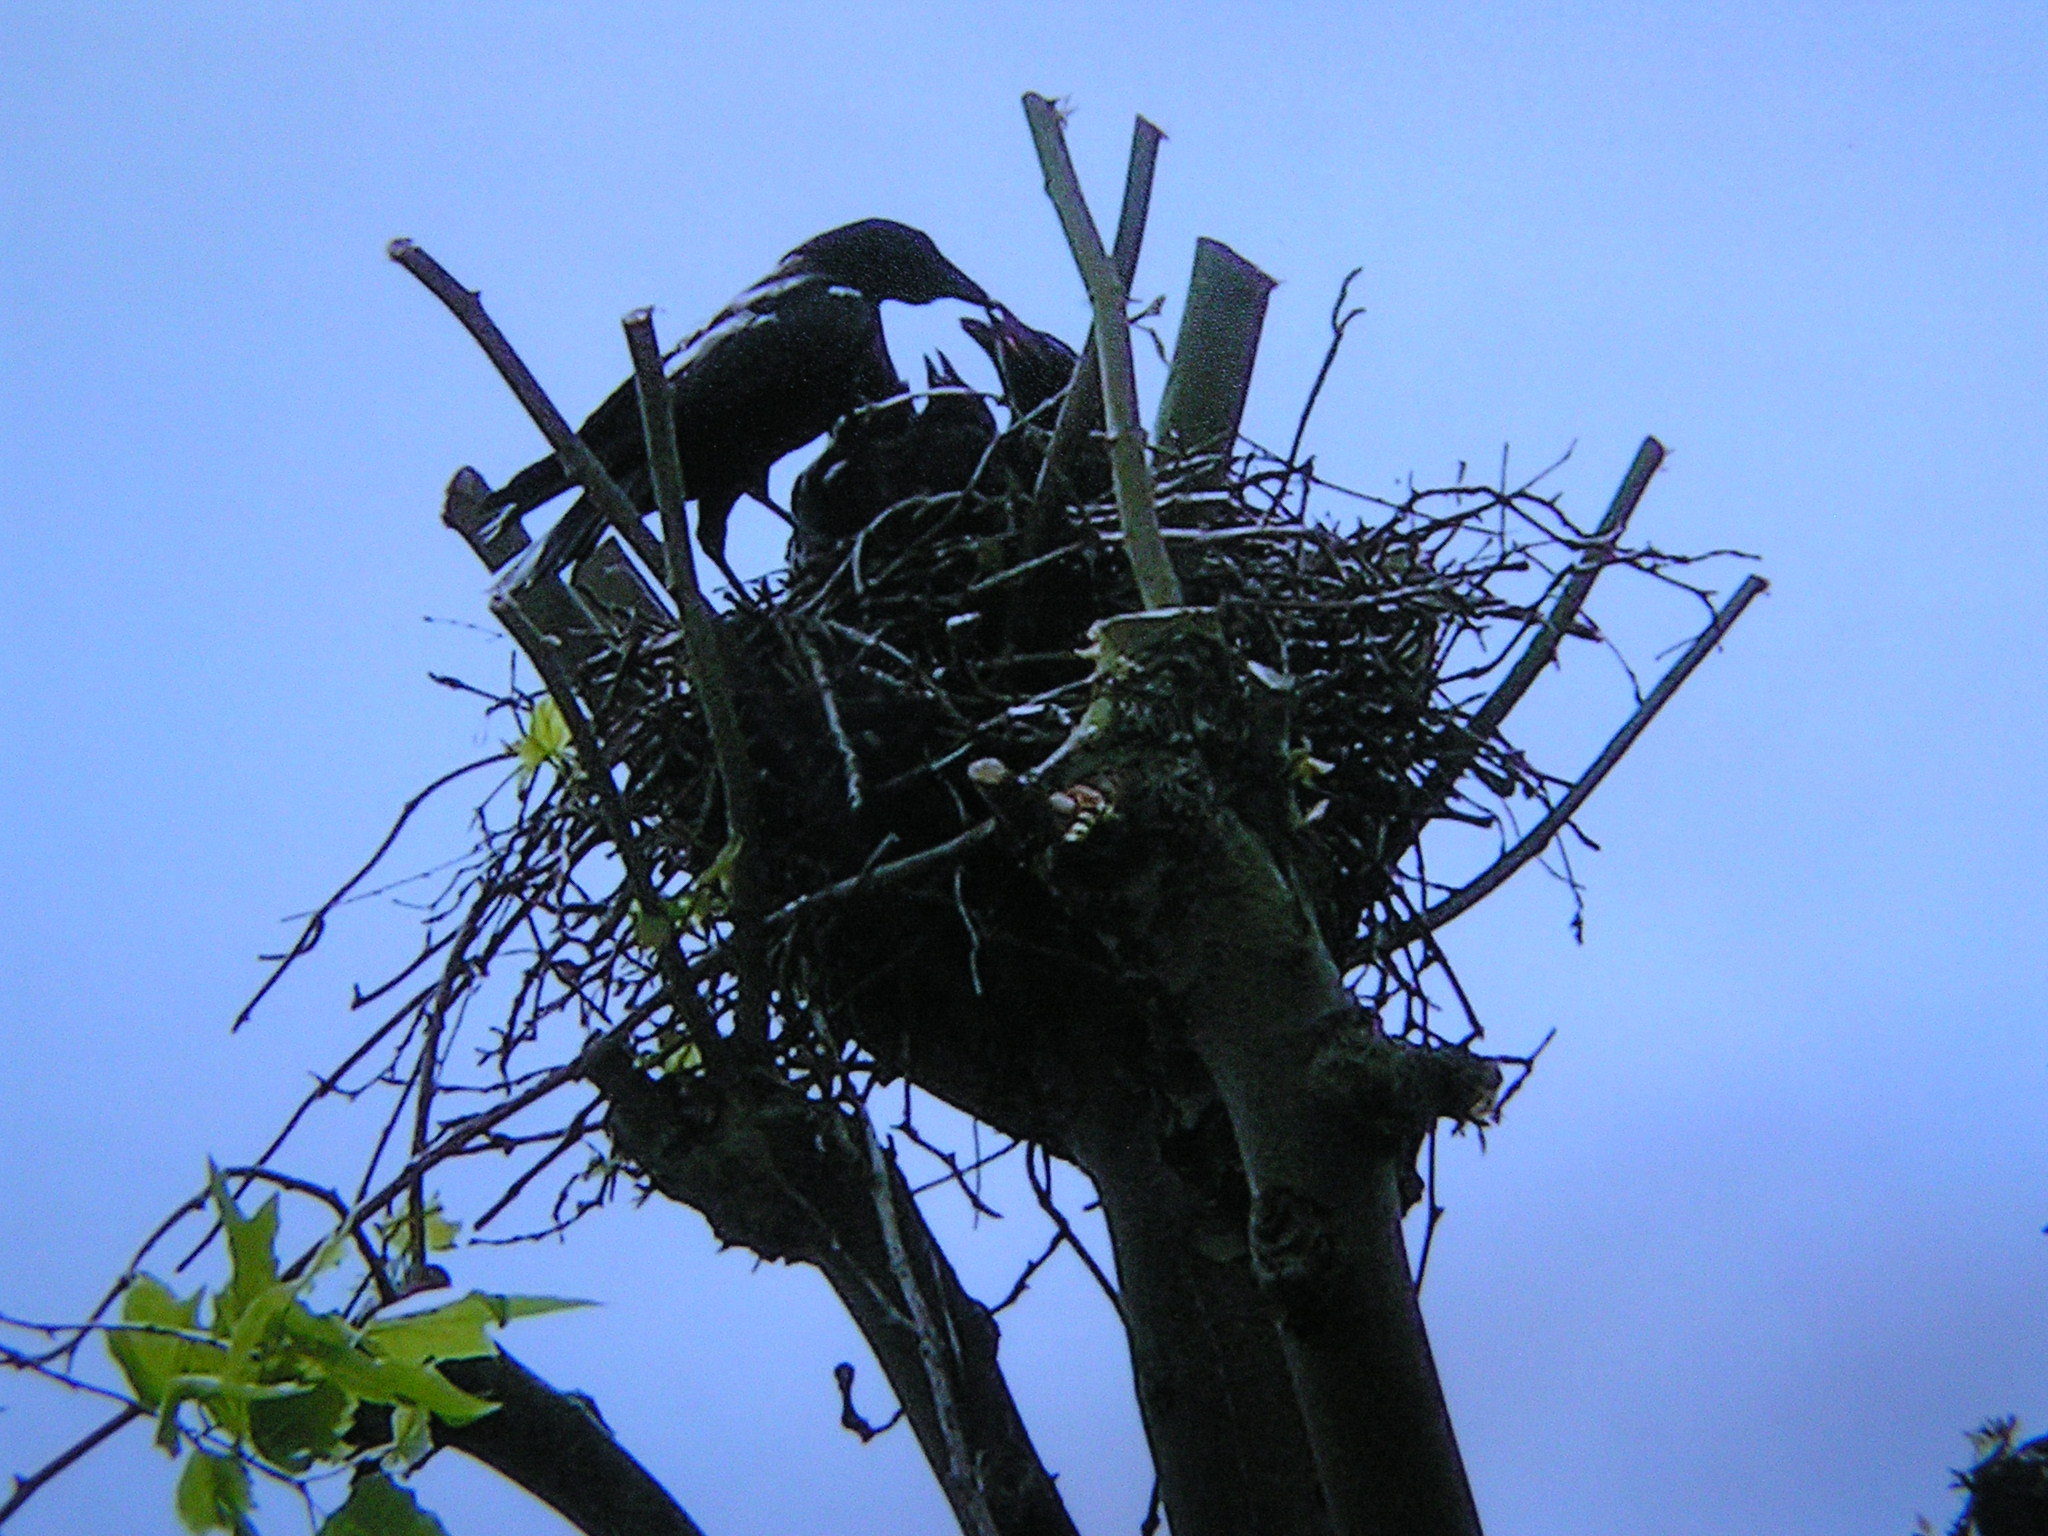 Tony Drakeford's picture of the chicks in  the nest